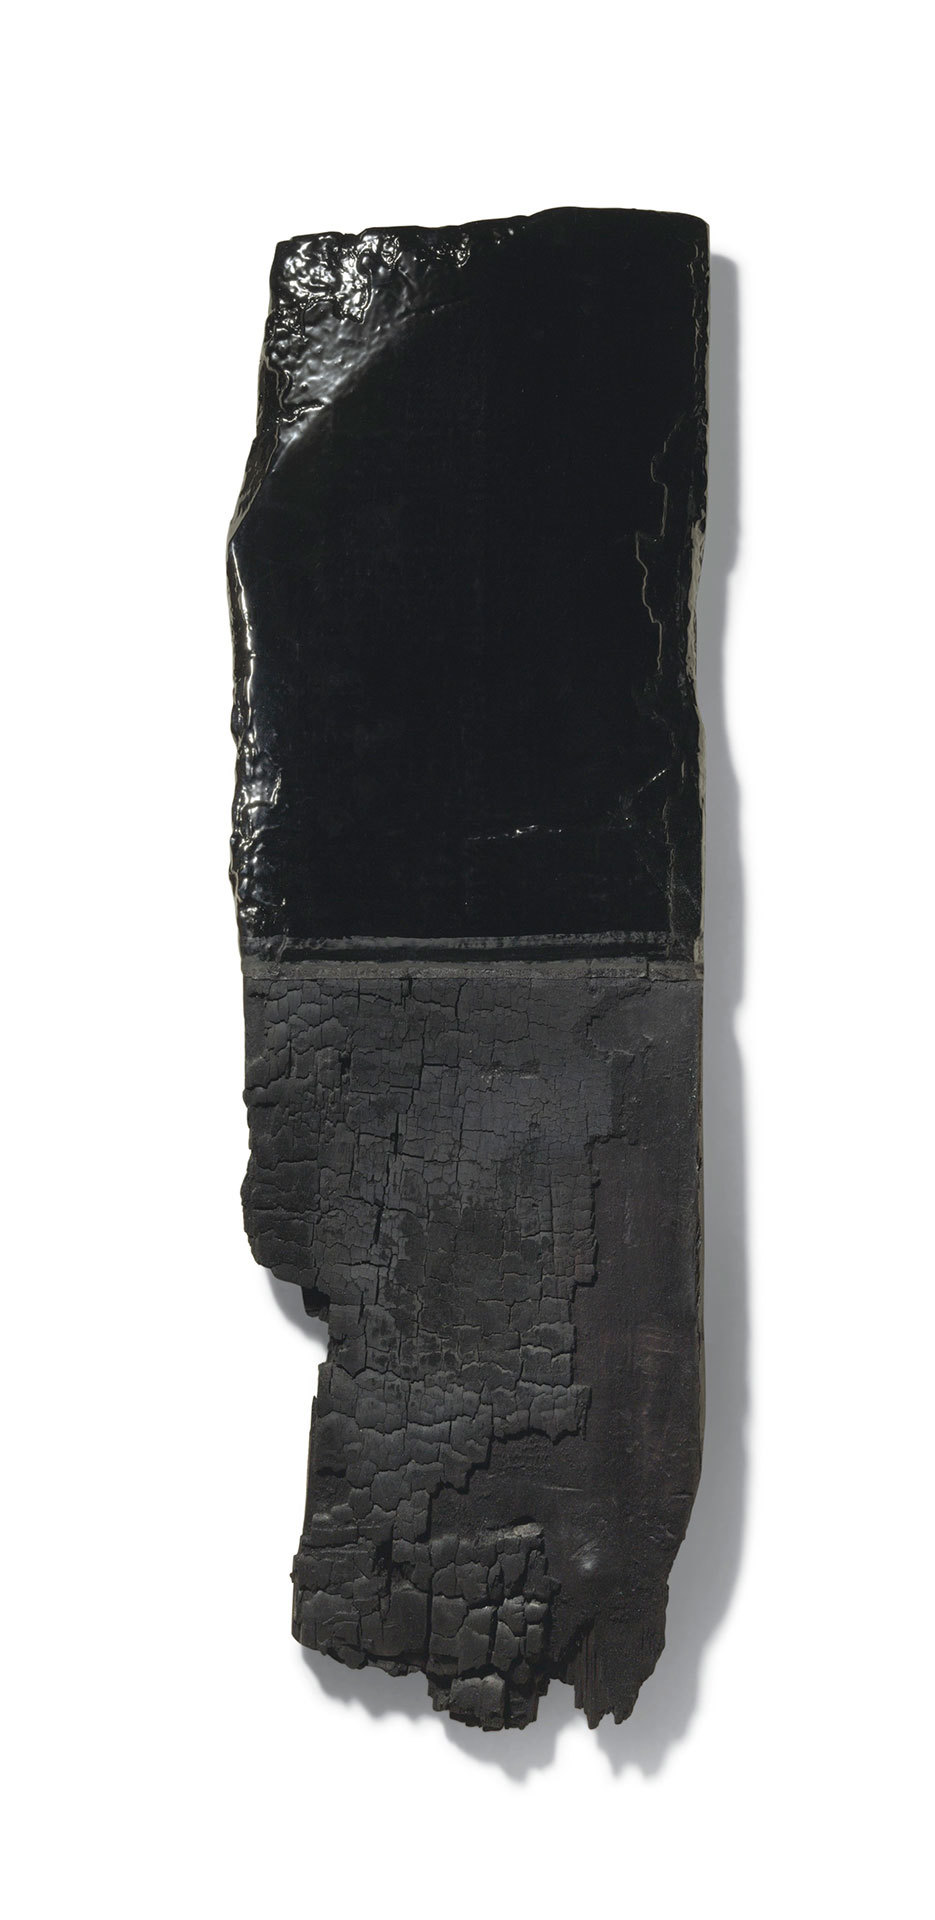 Simon Starling: 'Layers of Darkness (Charred, Lacquered)'.